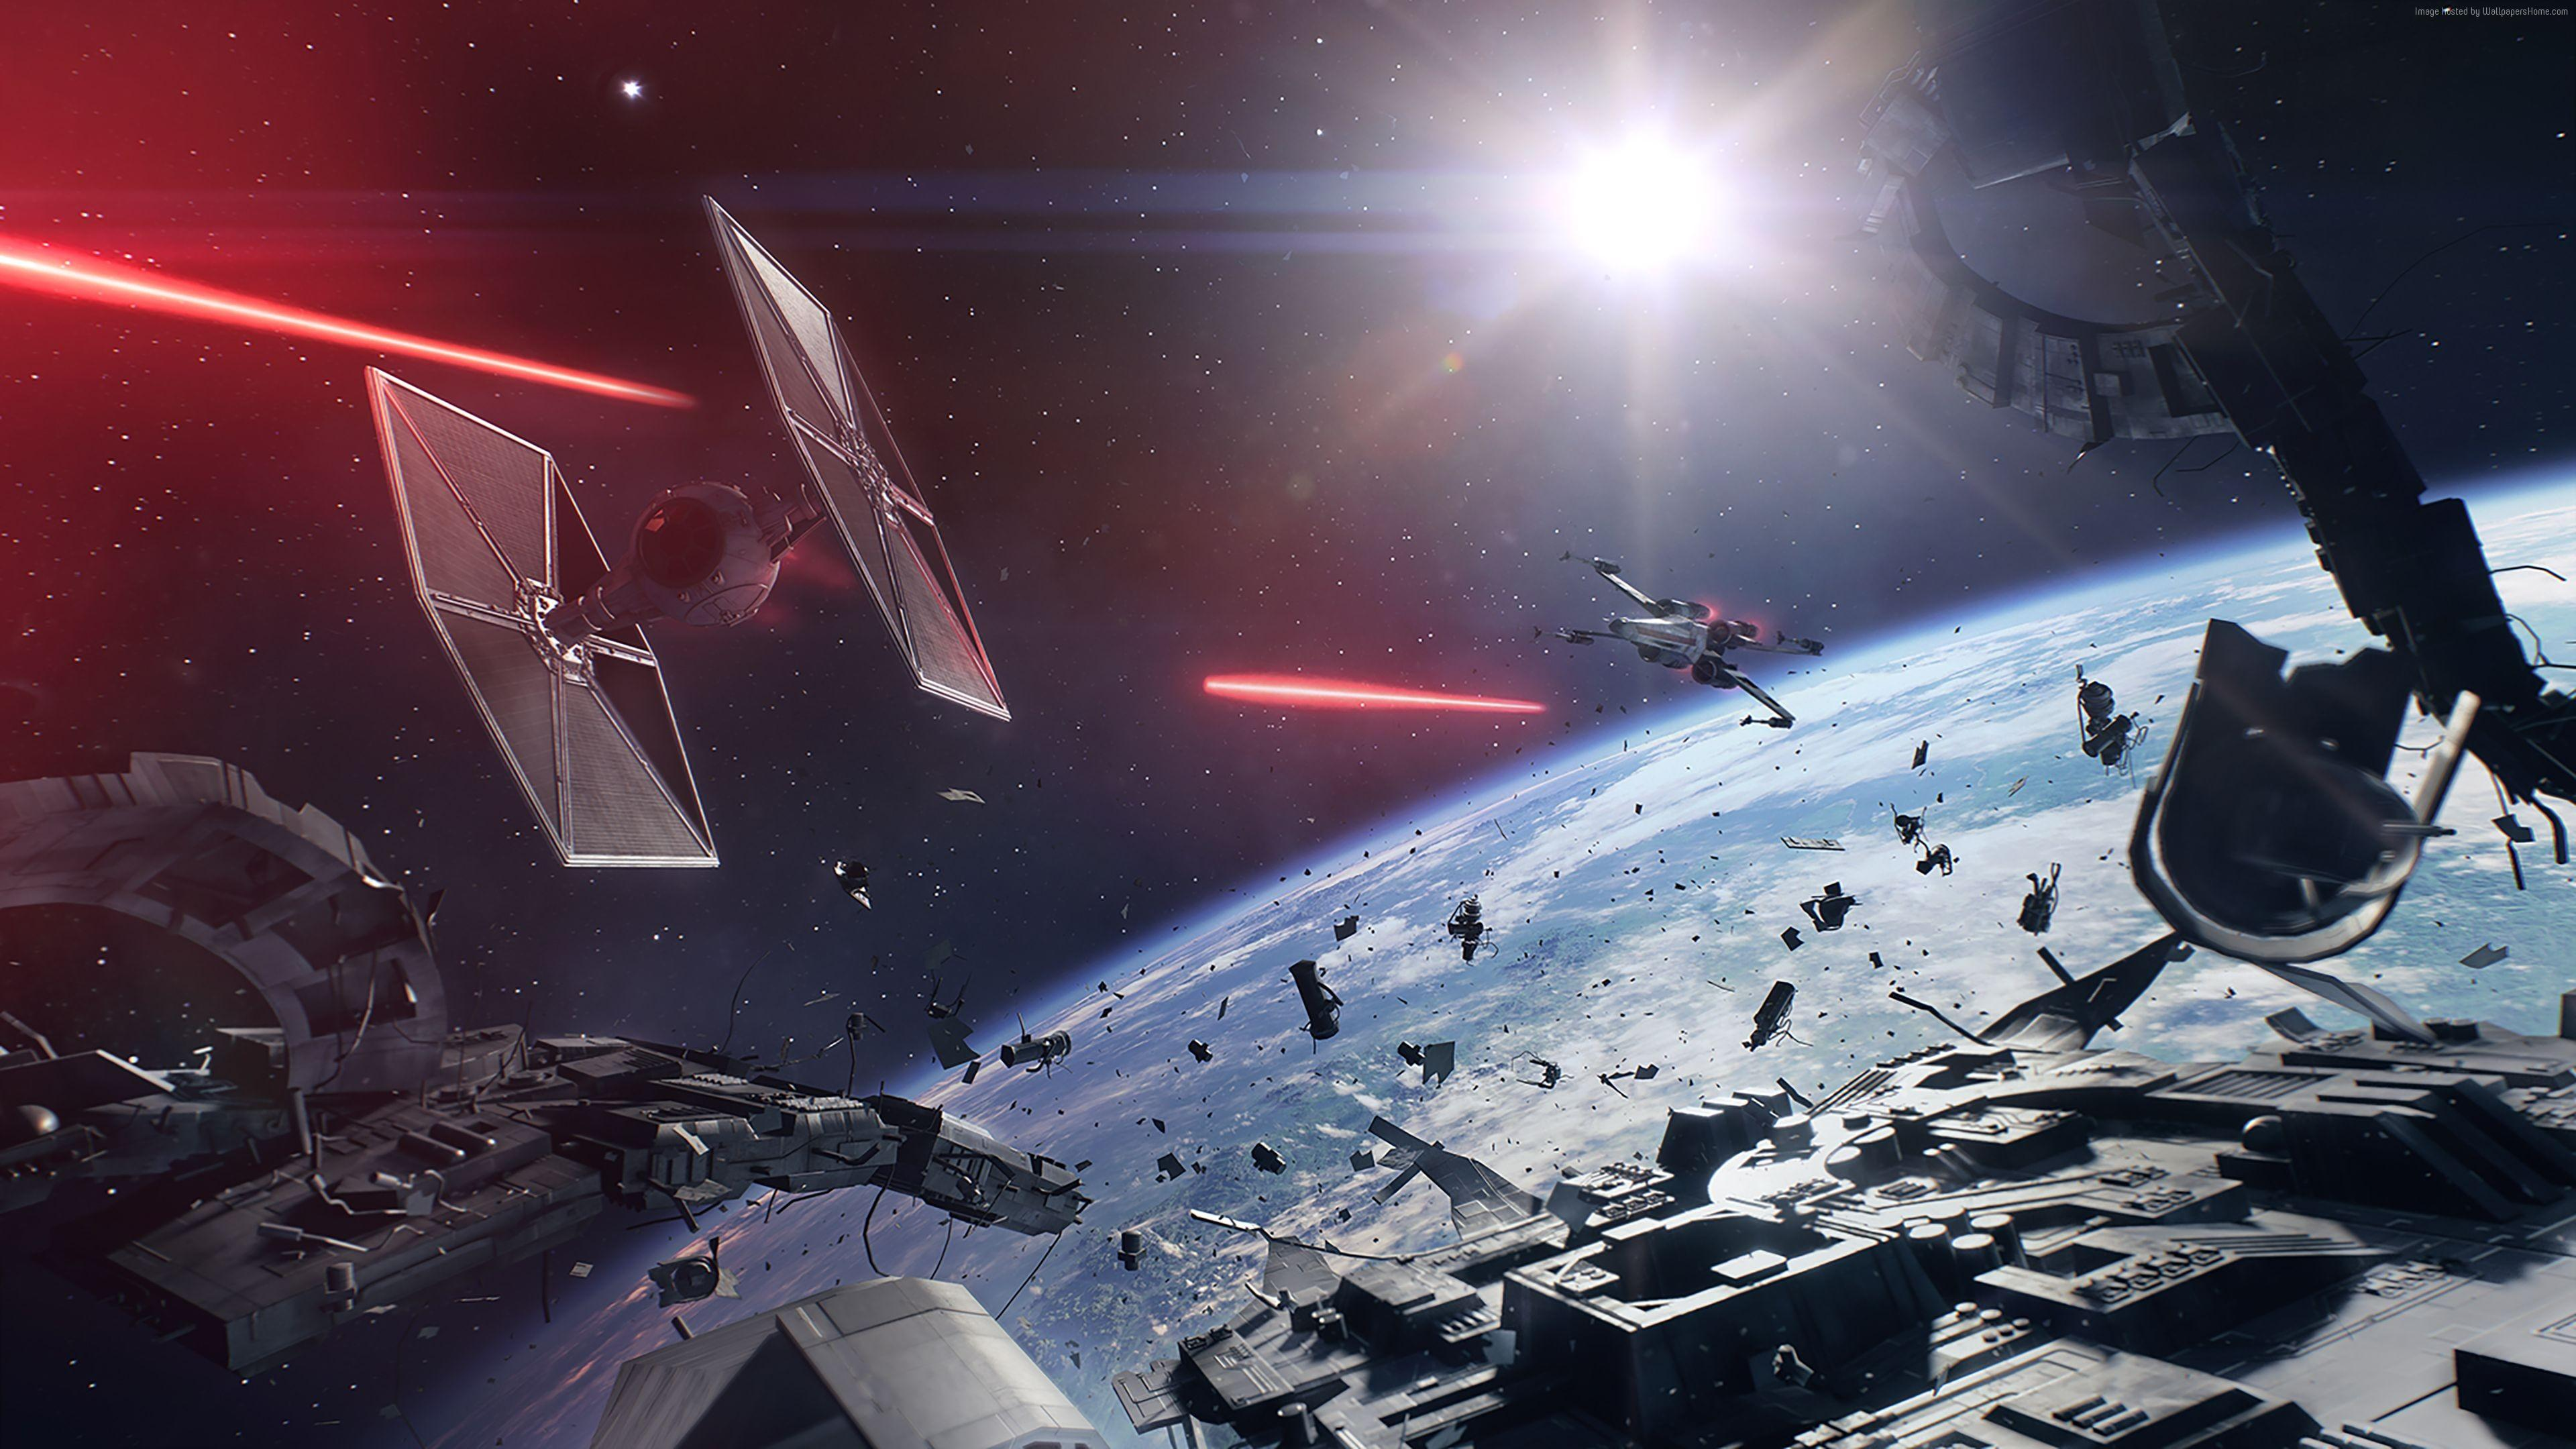 Star Wars High Res Wallpaper Posted By Zoey Johnson